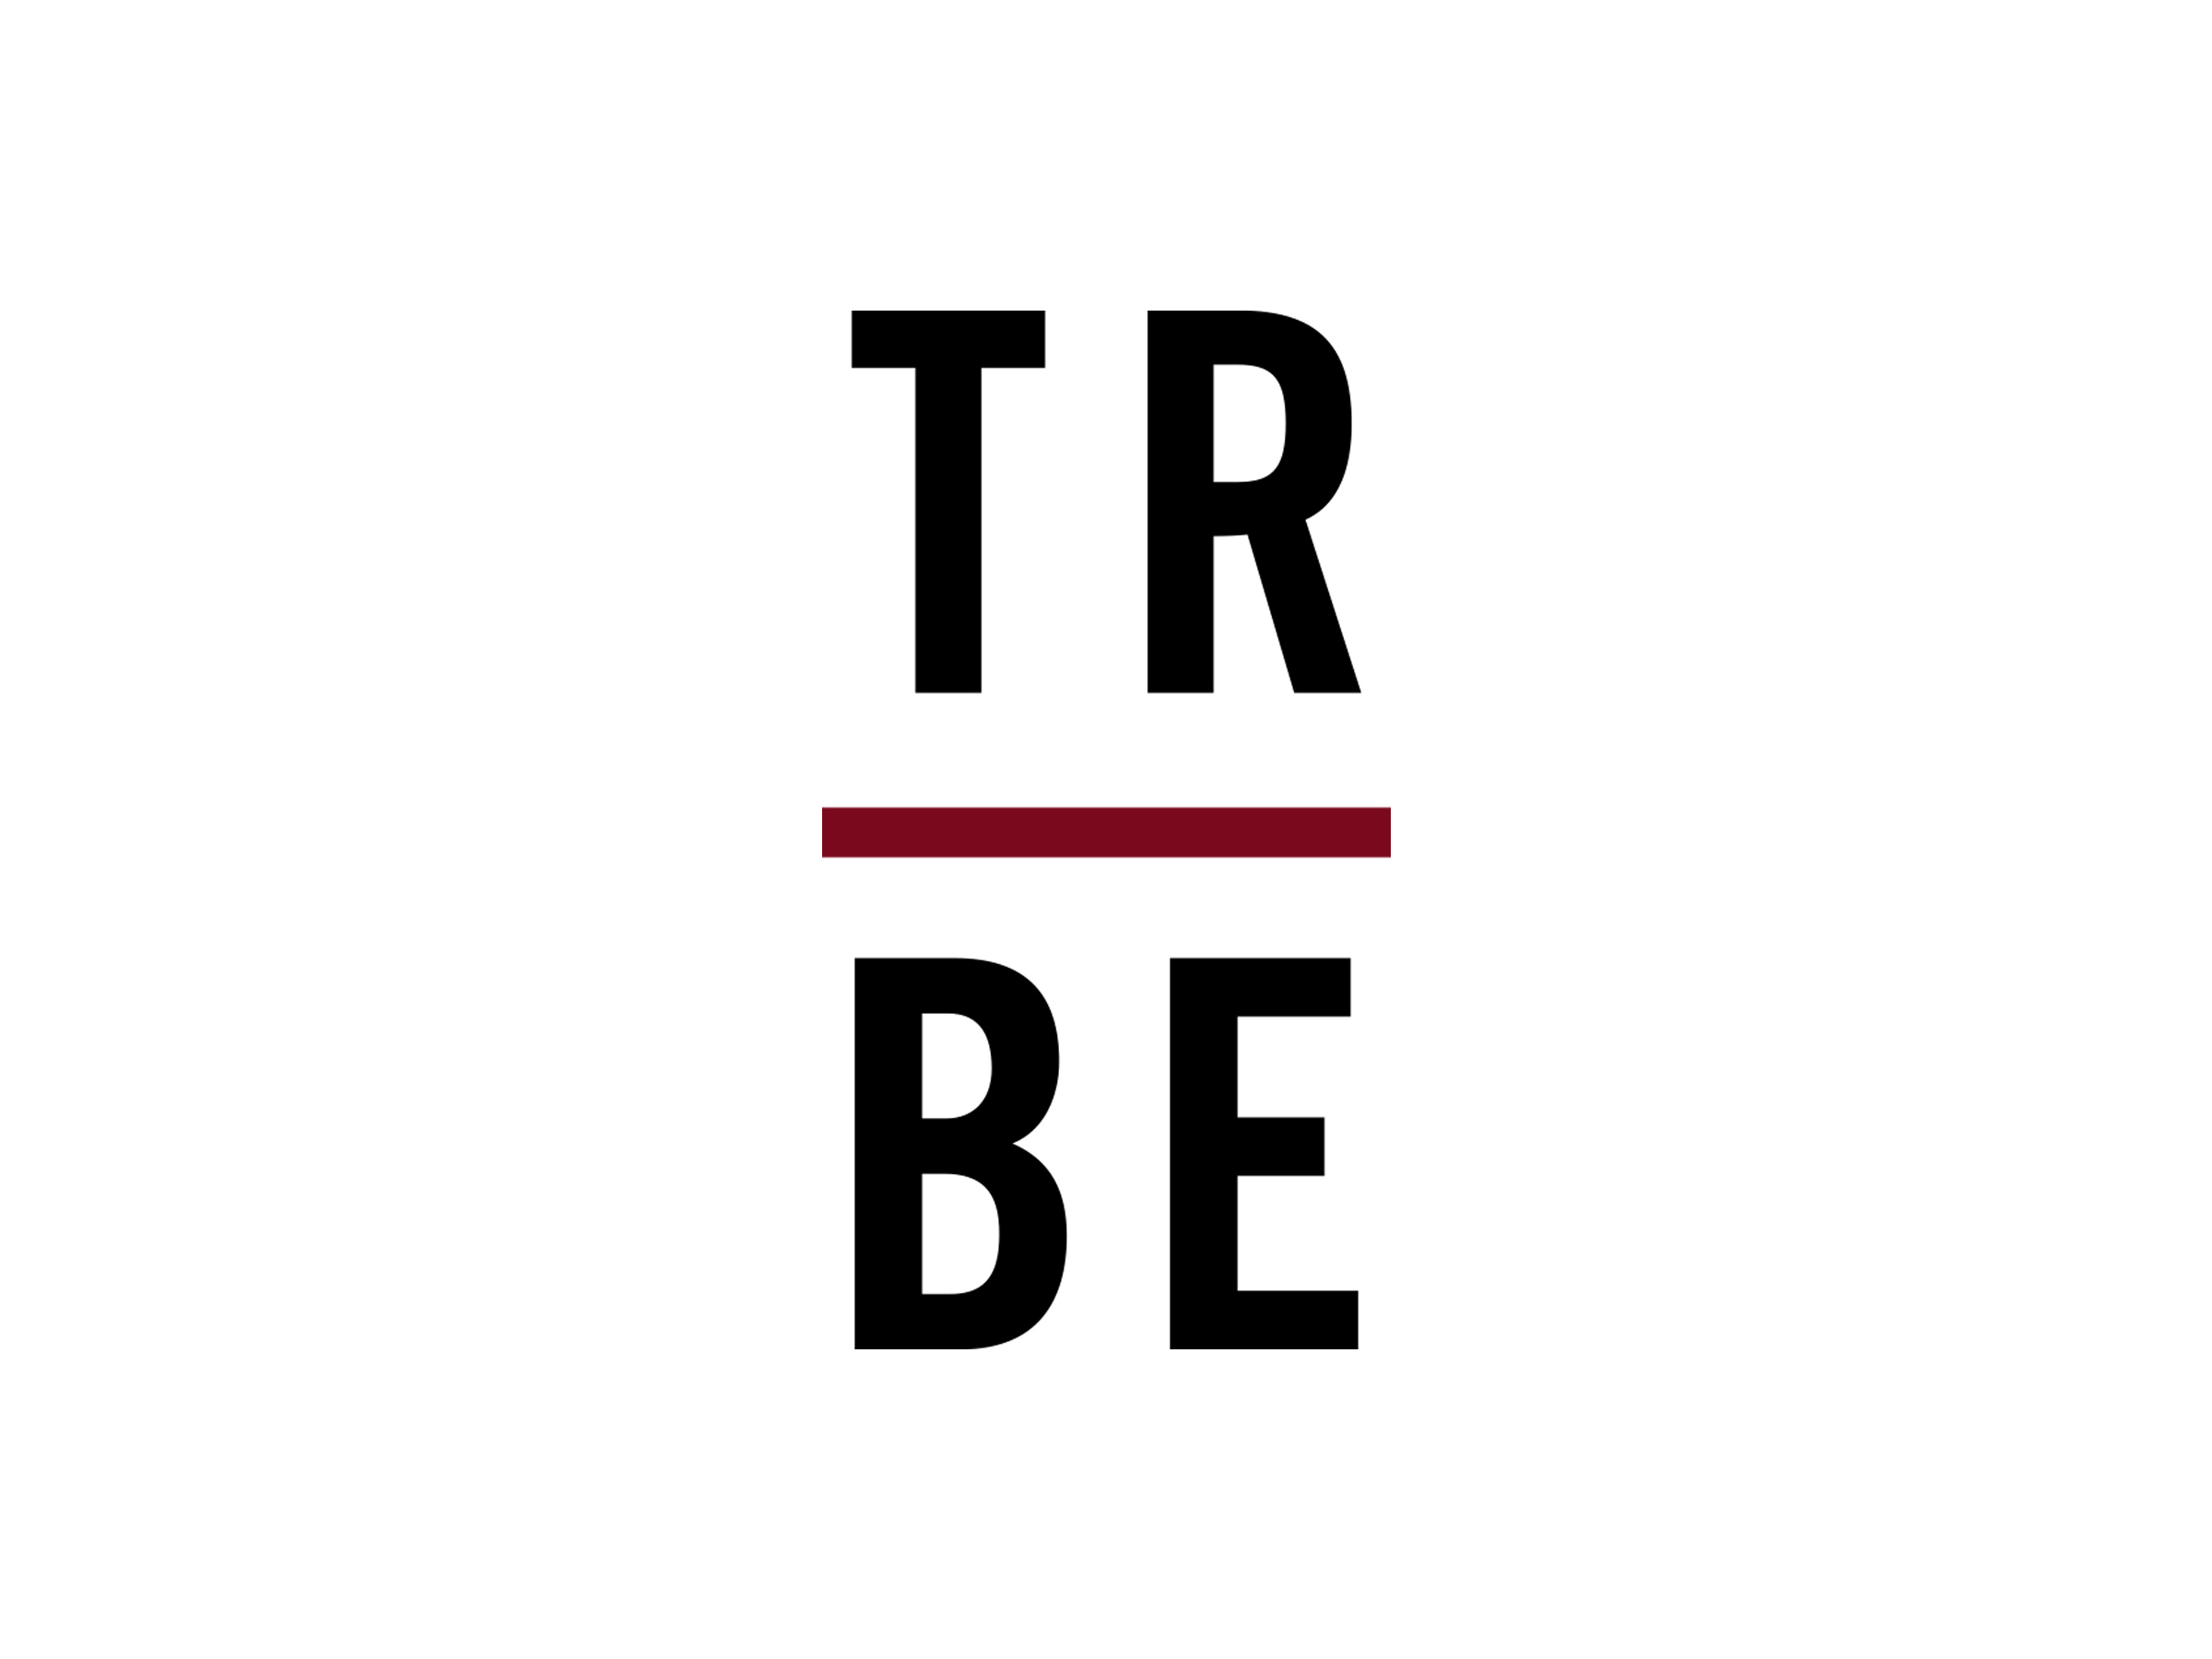 TH-logo-tribe.jpg